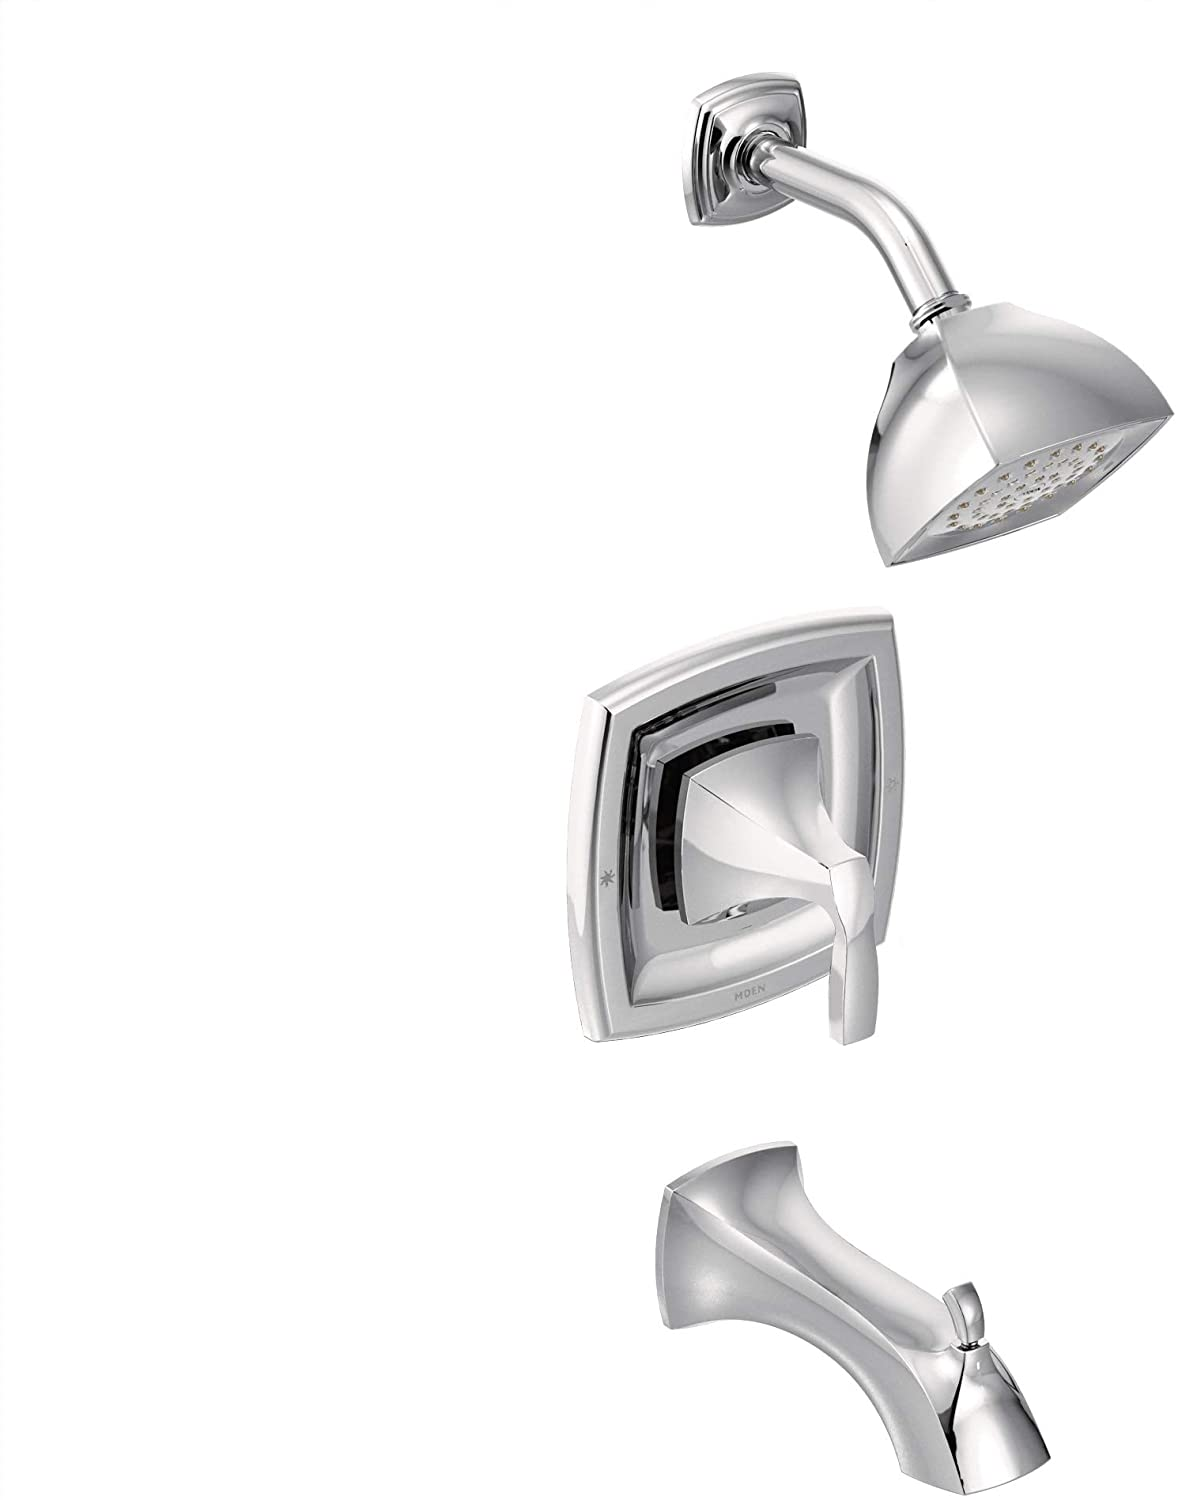 Moen T2693EP Voss Posi-Temp Pressure Balancing Eco-Performance Tub and Shower Trim Kit, Valve Required, Chrome